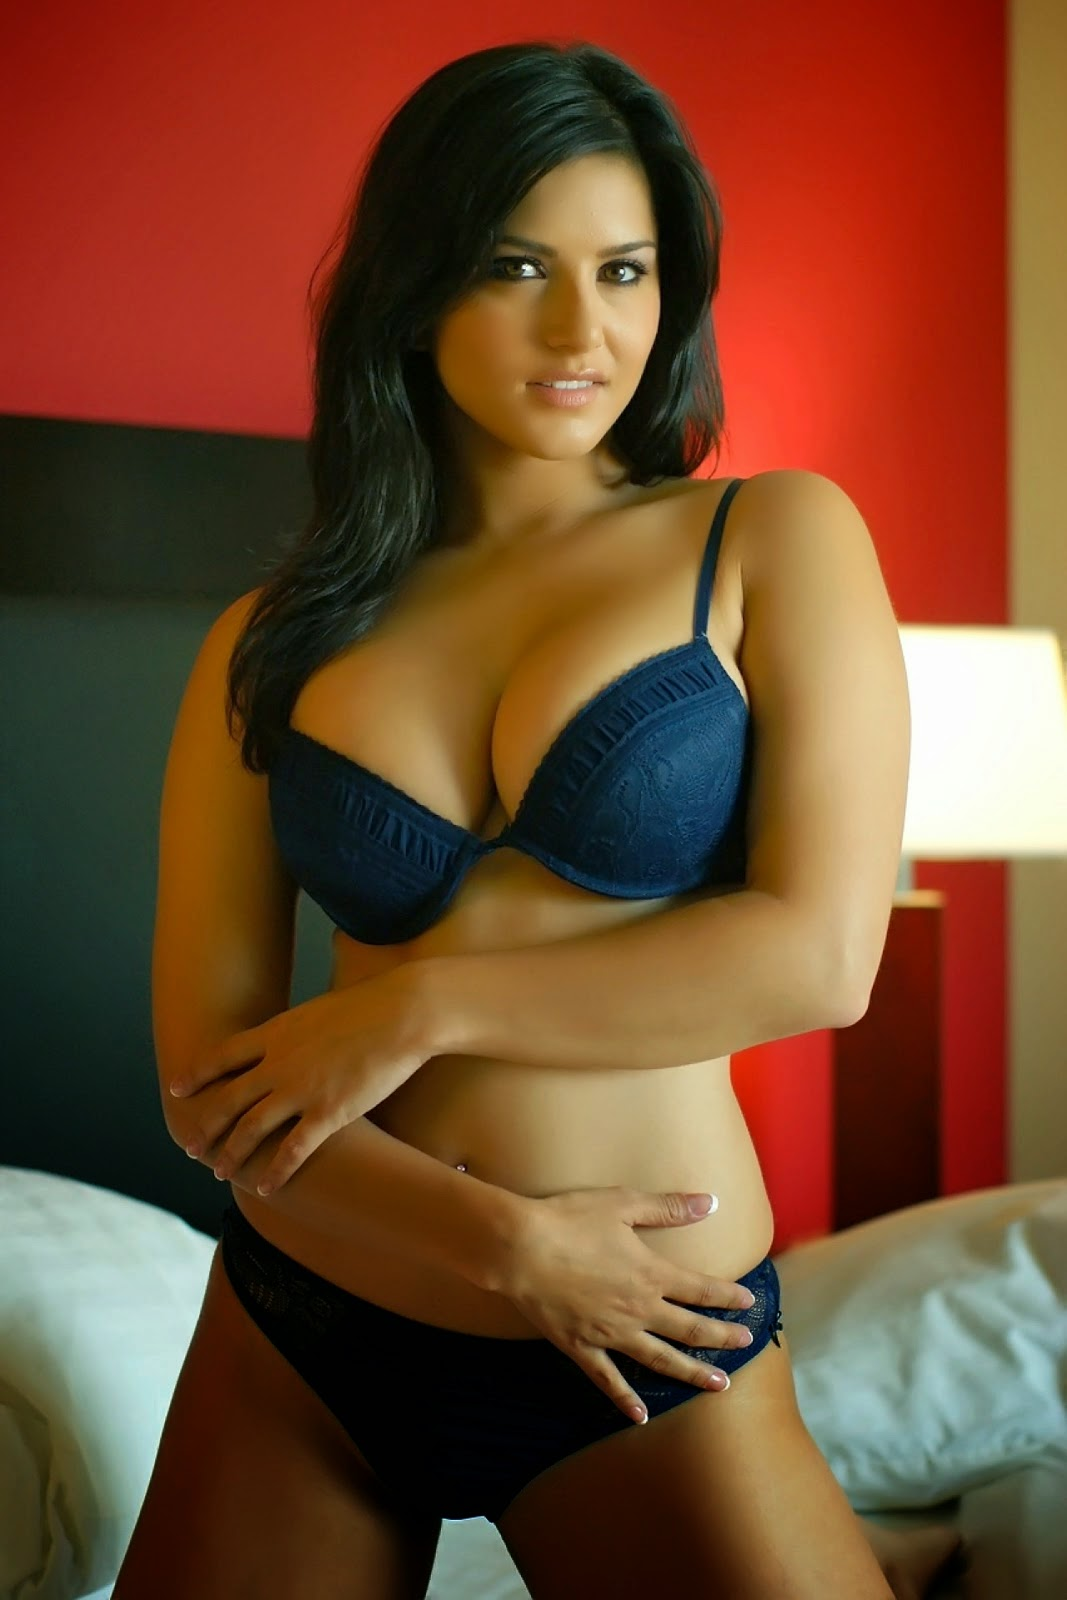 Sunny Leone Hot Images In Blue Bikini - Hot4Sure-3265